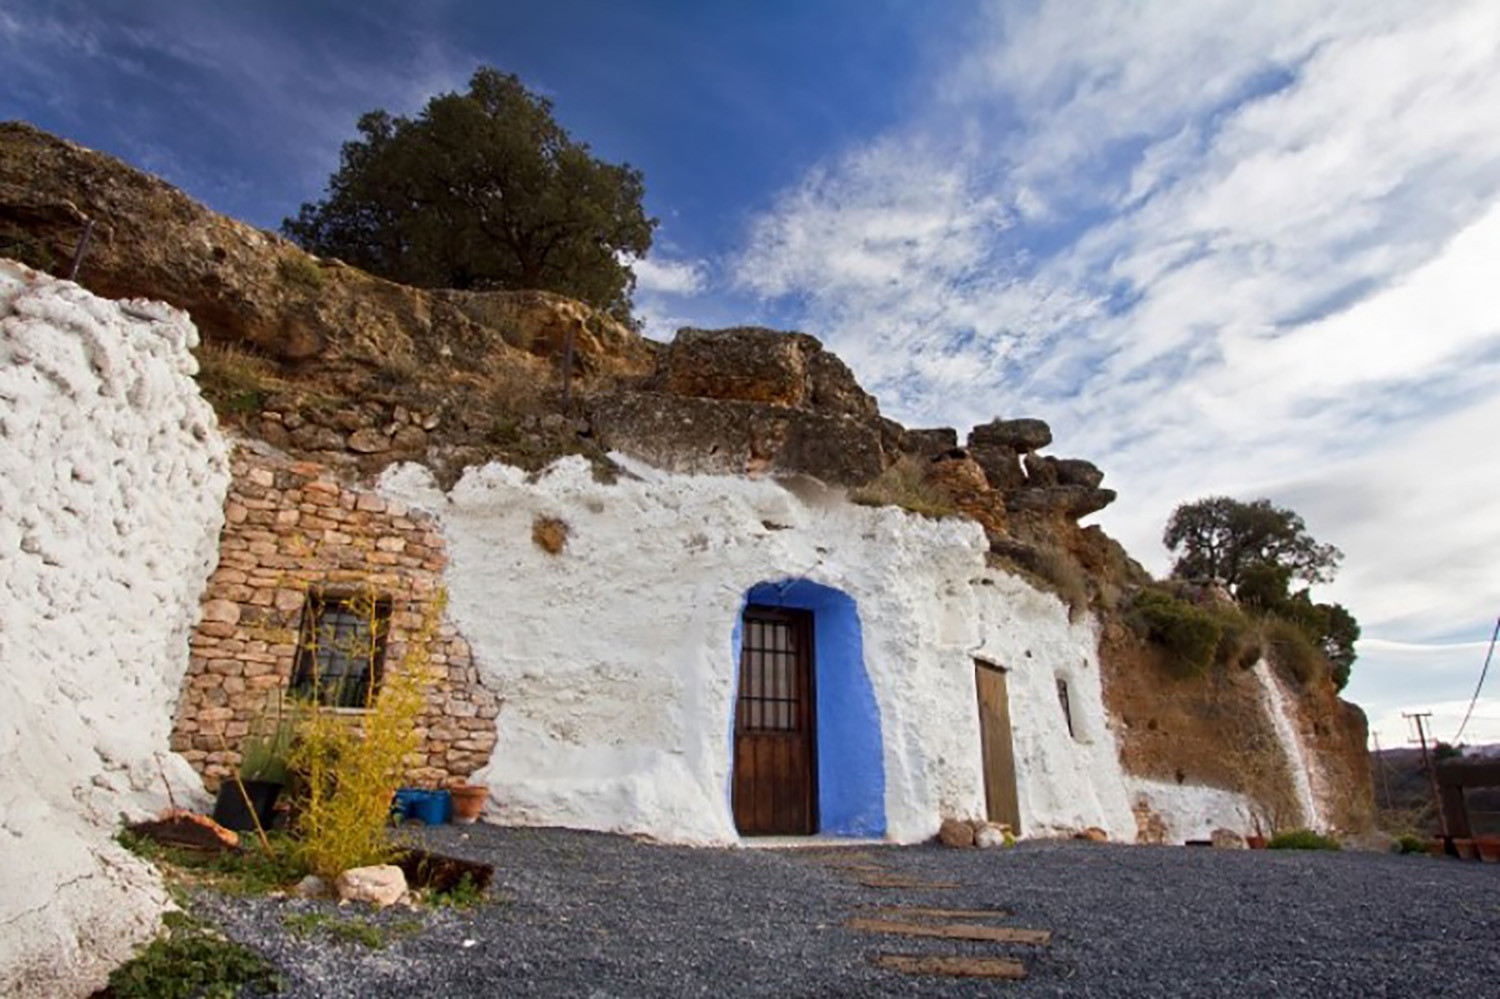 A Restored Cave House in Los Balcones